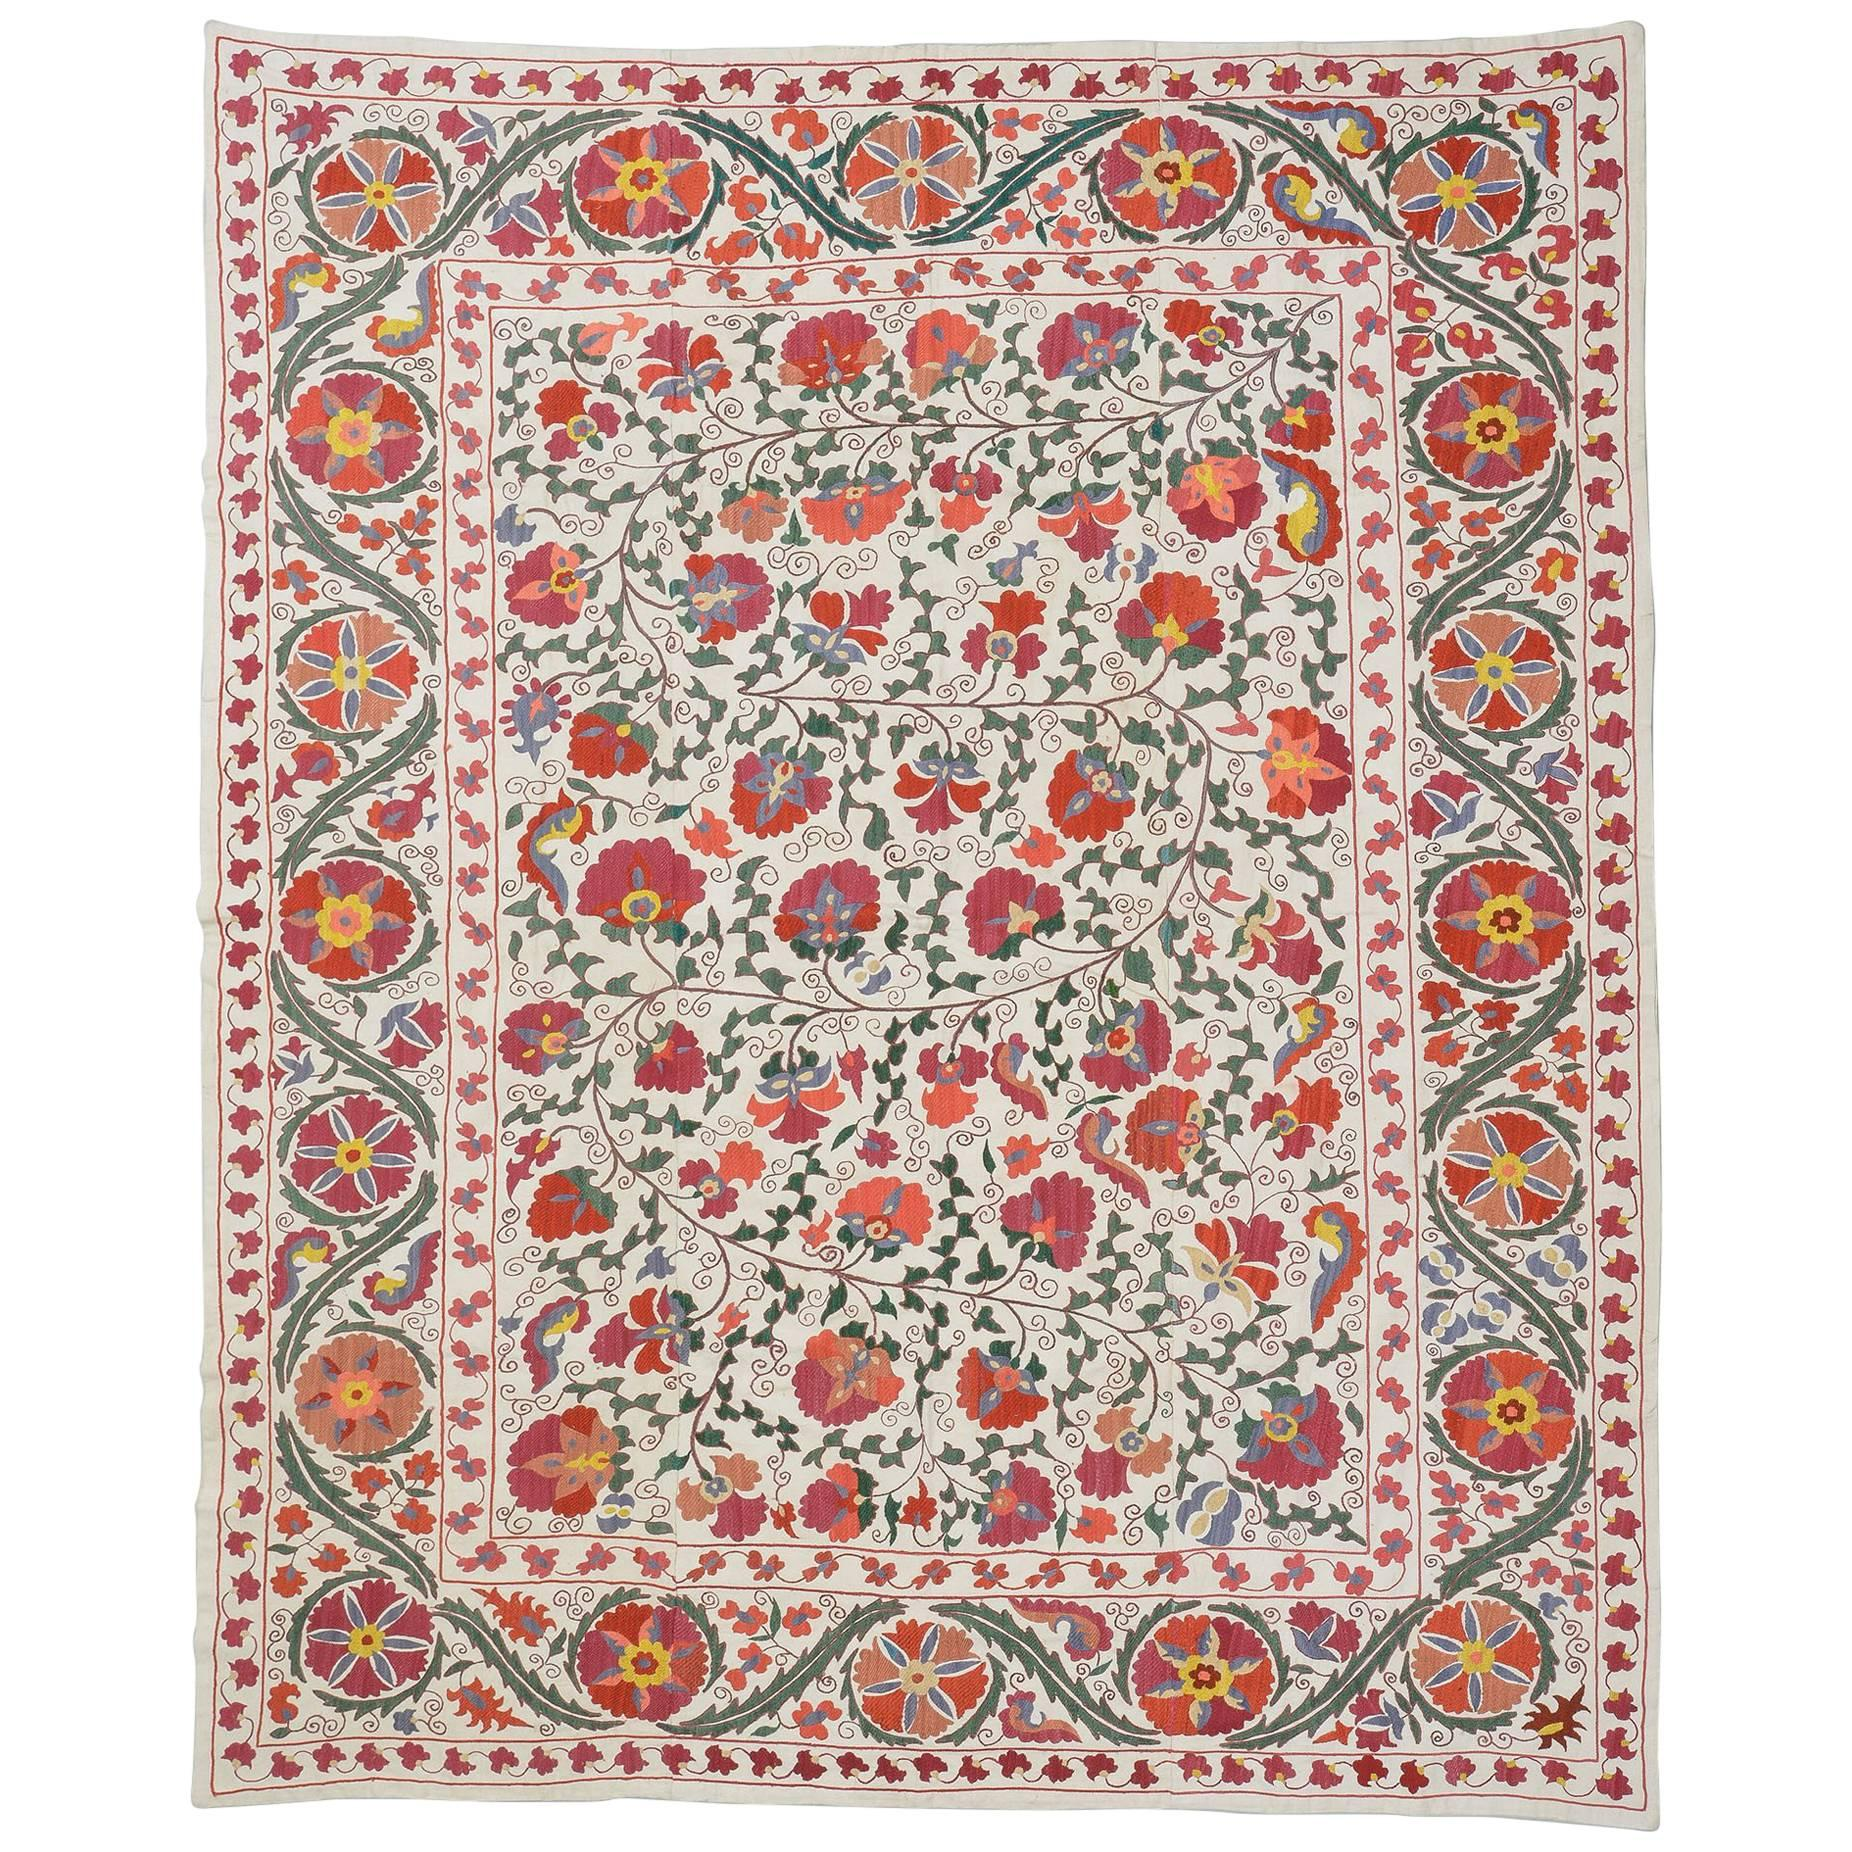 Susani Embroidery, Wall Hanging or Bed Cover or Table Cover